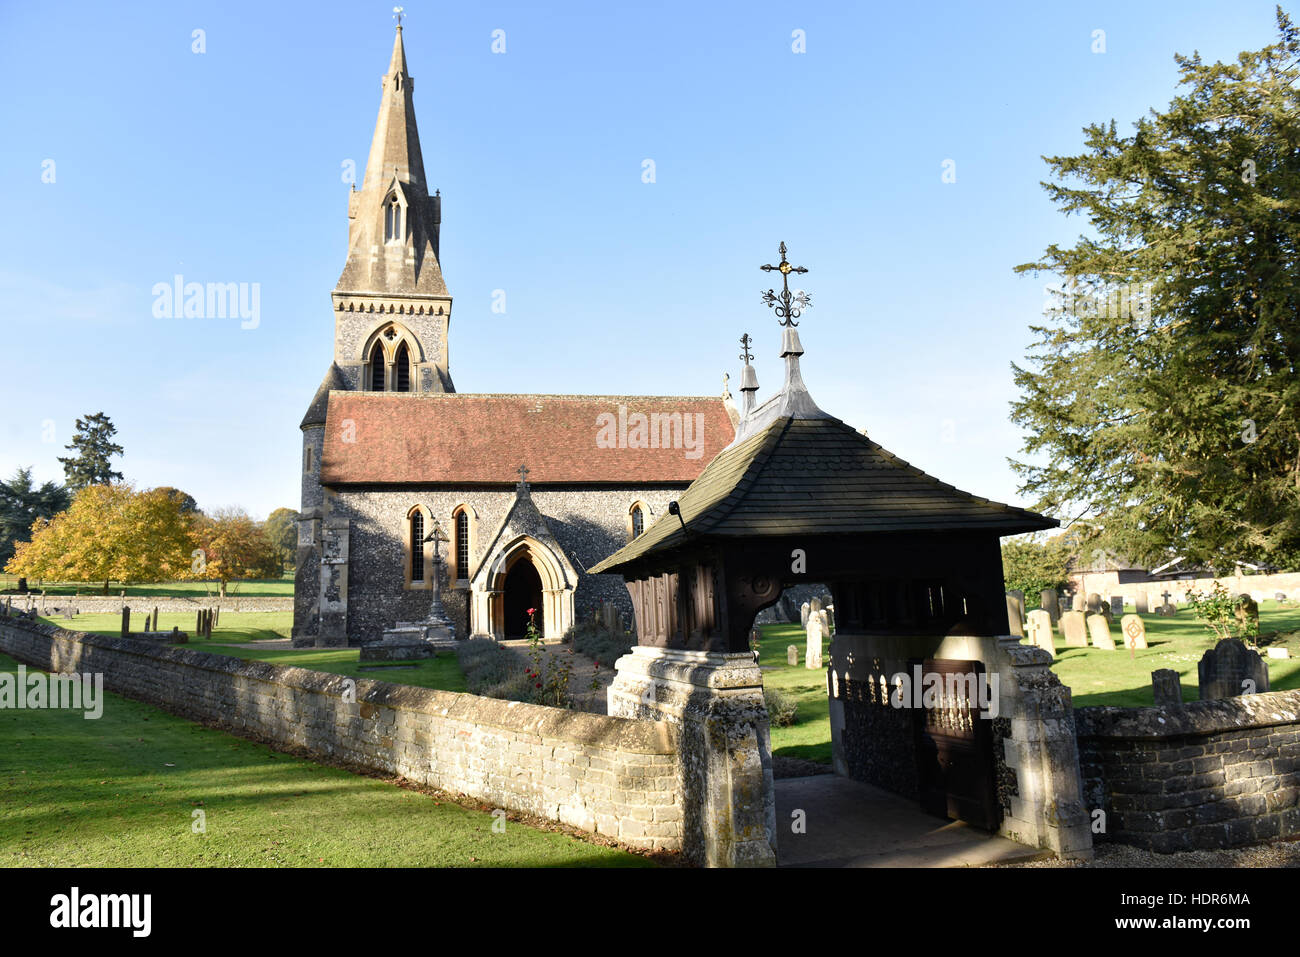 St mark 39 s church englefield berkshire which is to be the St mark s church englefield